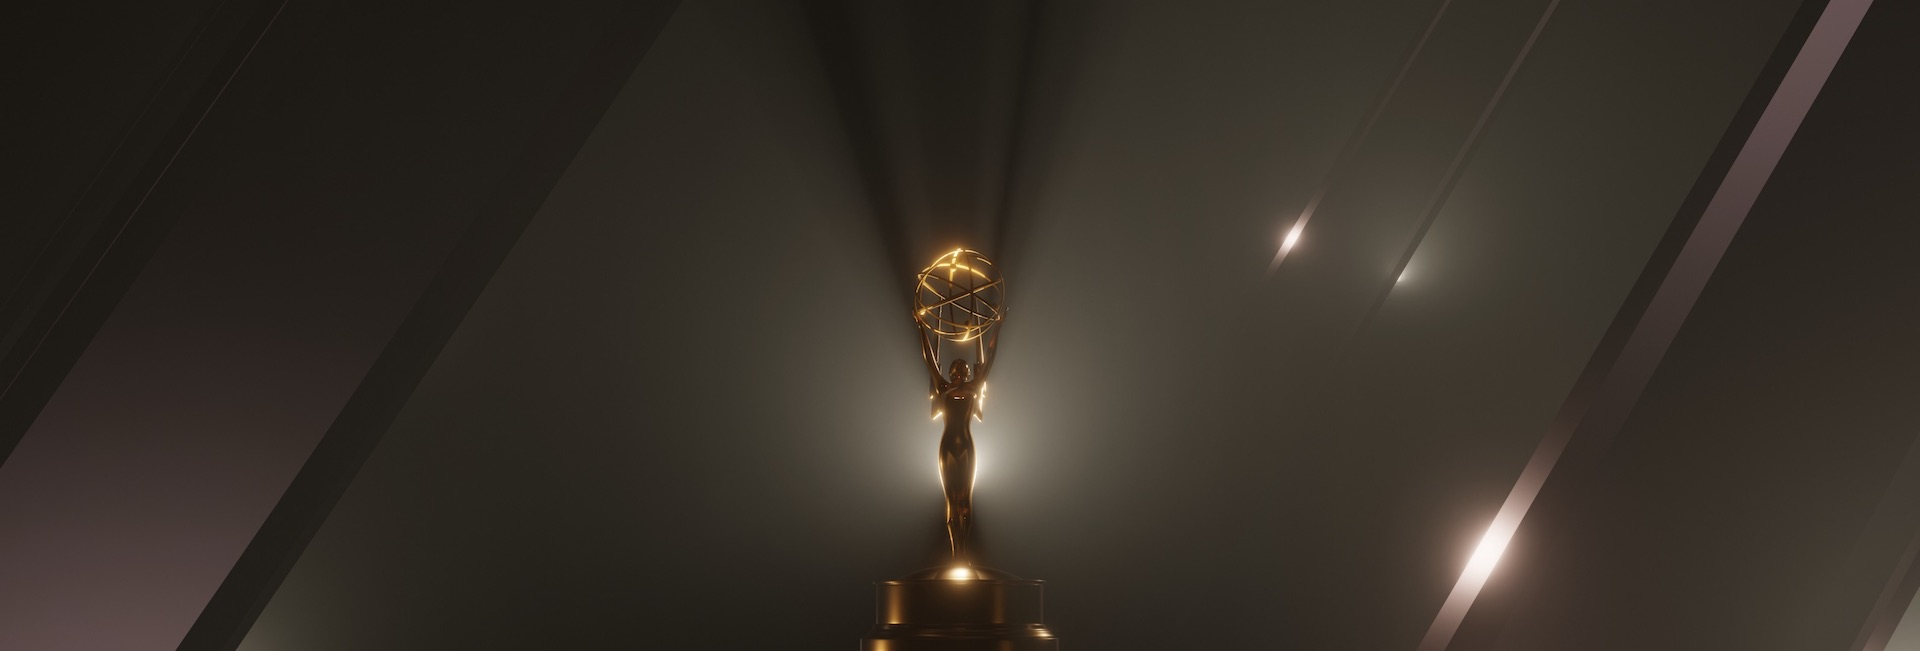 EMMYS 2018 Motion Graphics